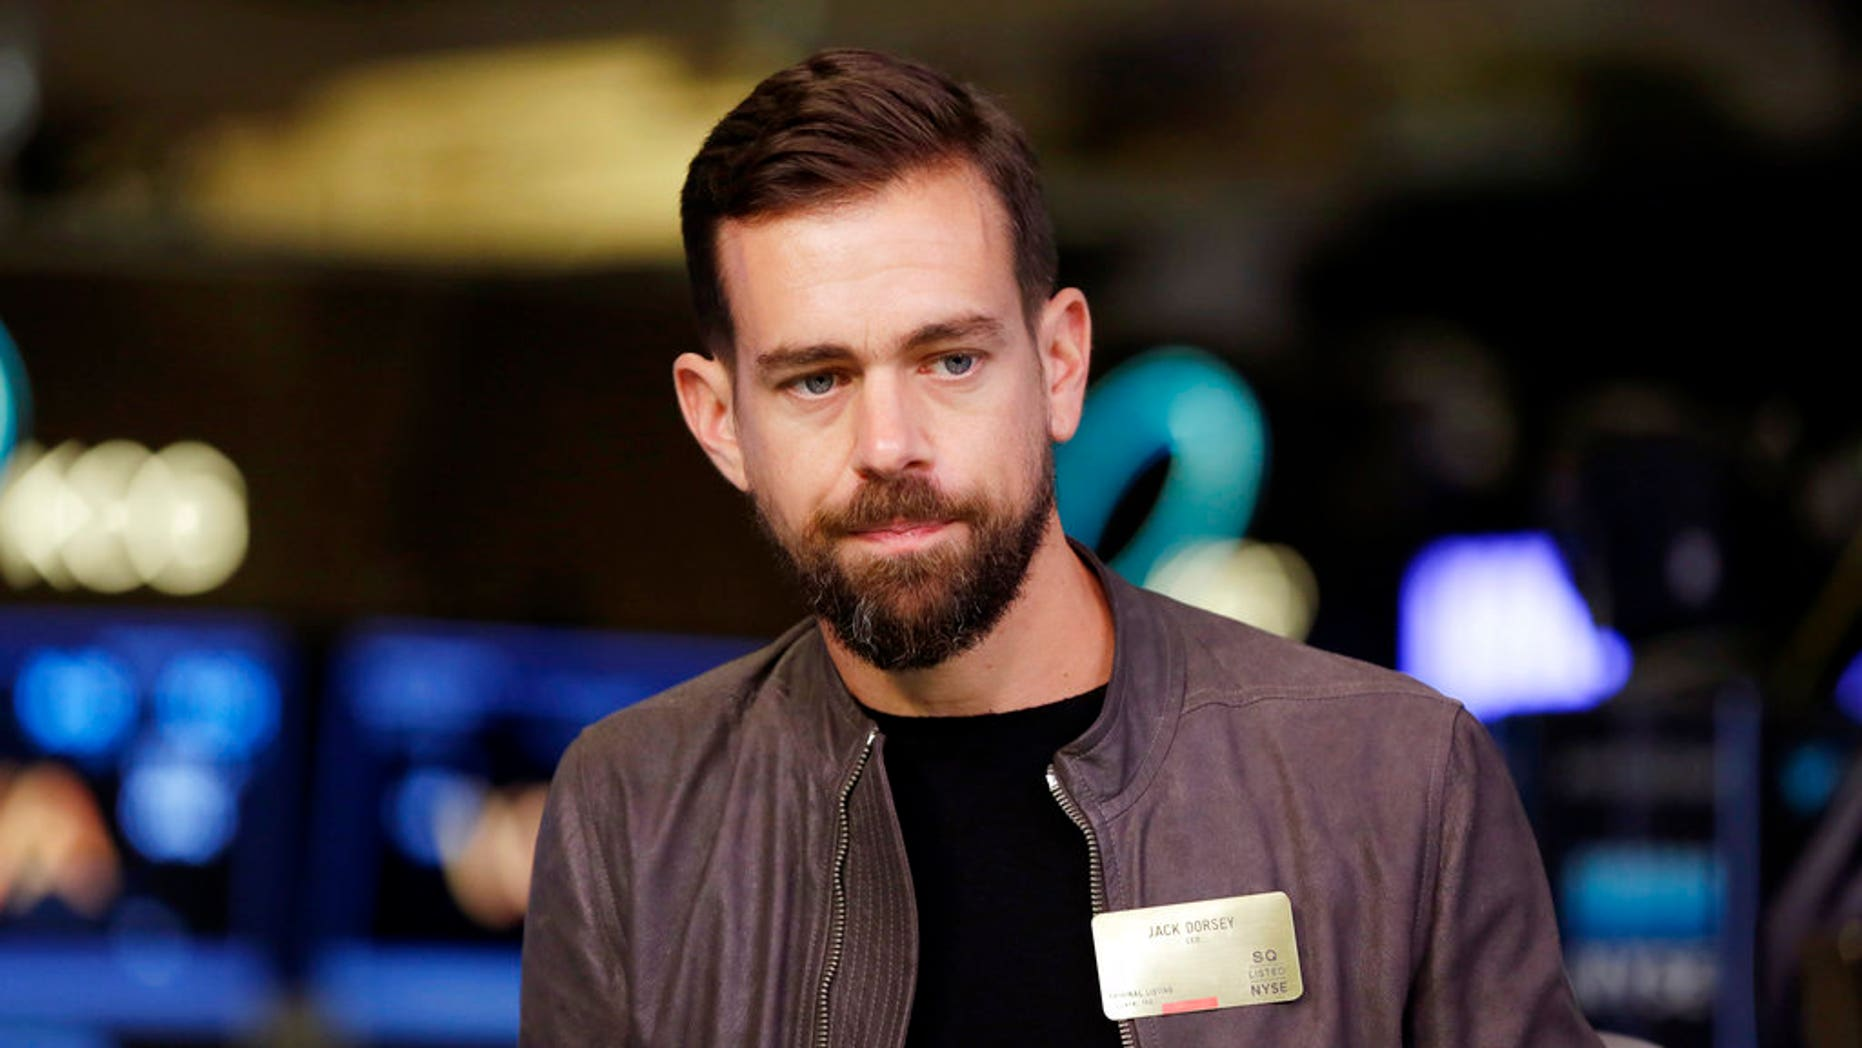 Twitter CEO Jack Dorsey is seen at the New York Stock Exchange, Nov. 19, 2015.